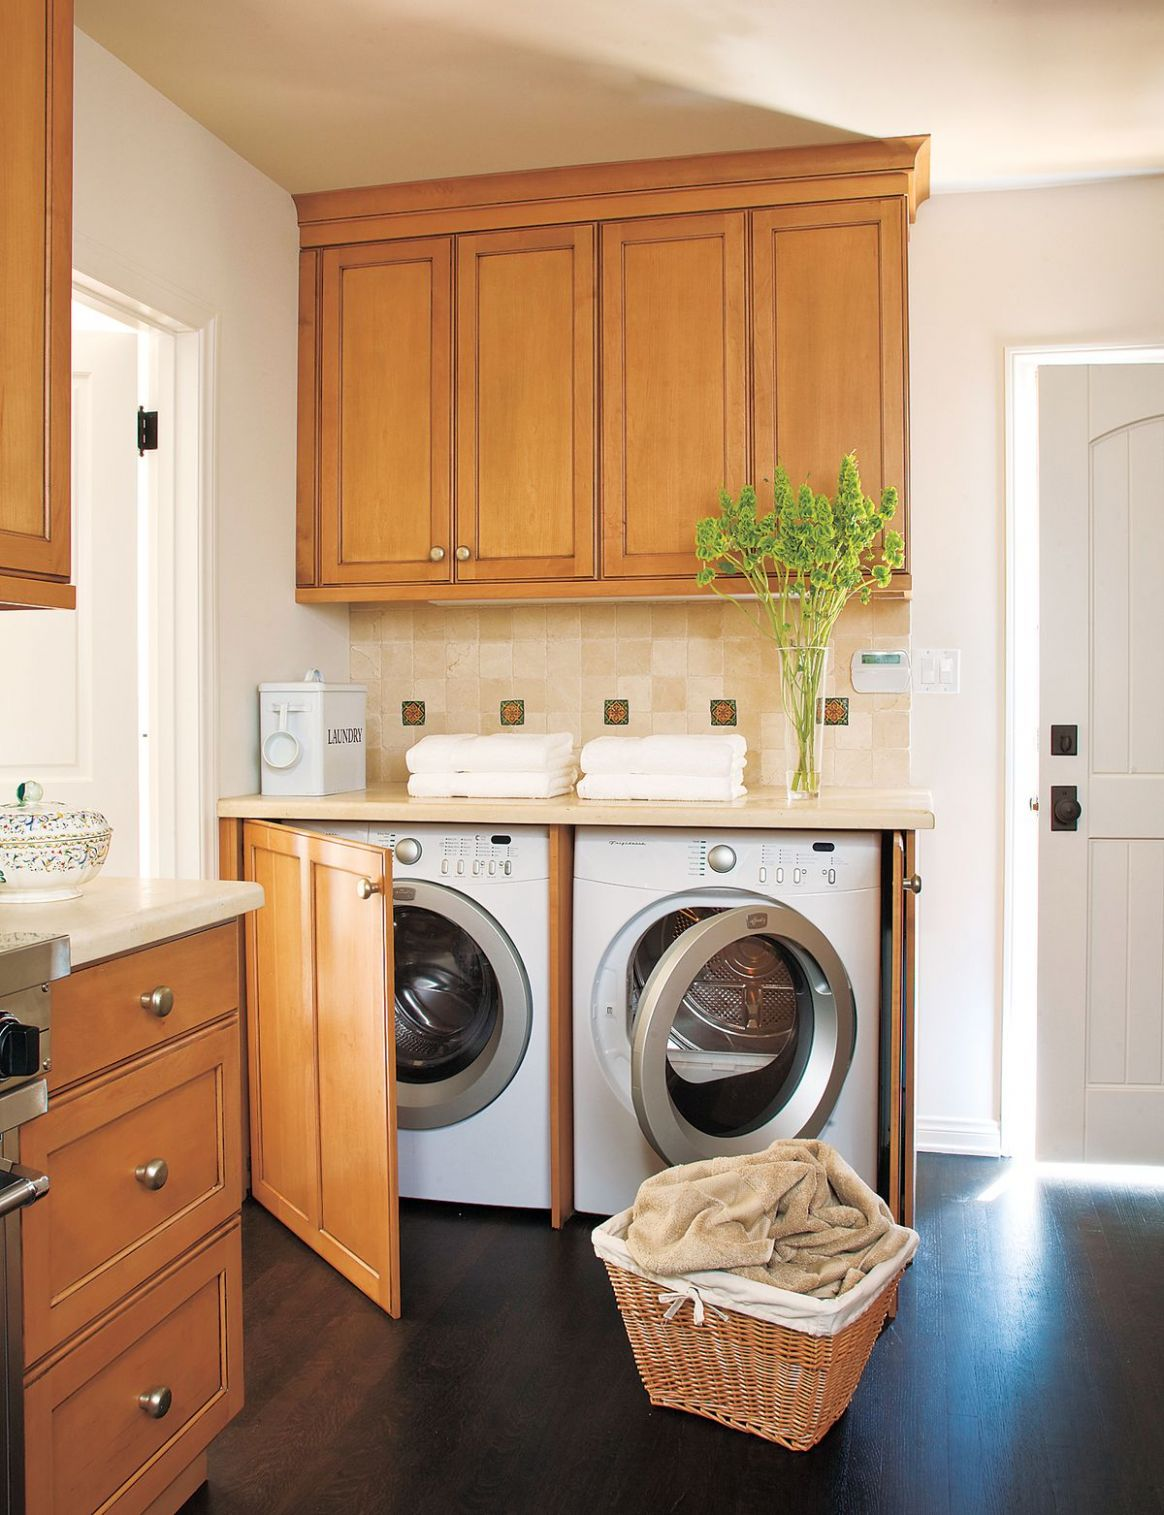 12 Ideas for a Fully Loaded Laundry Room - This Old House